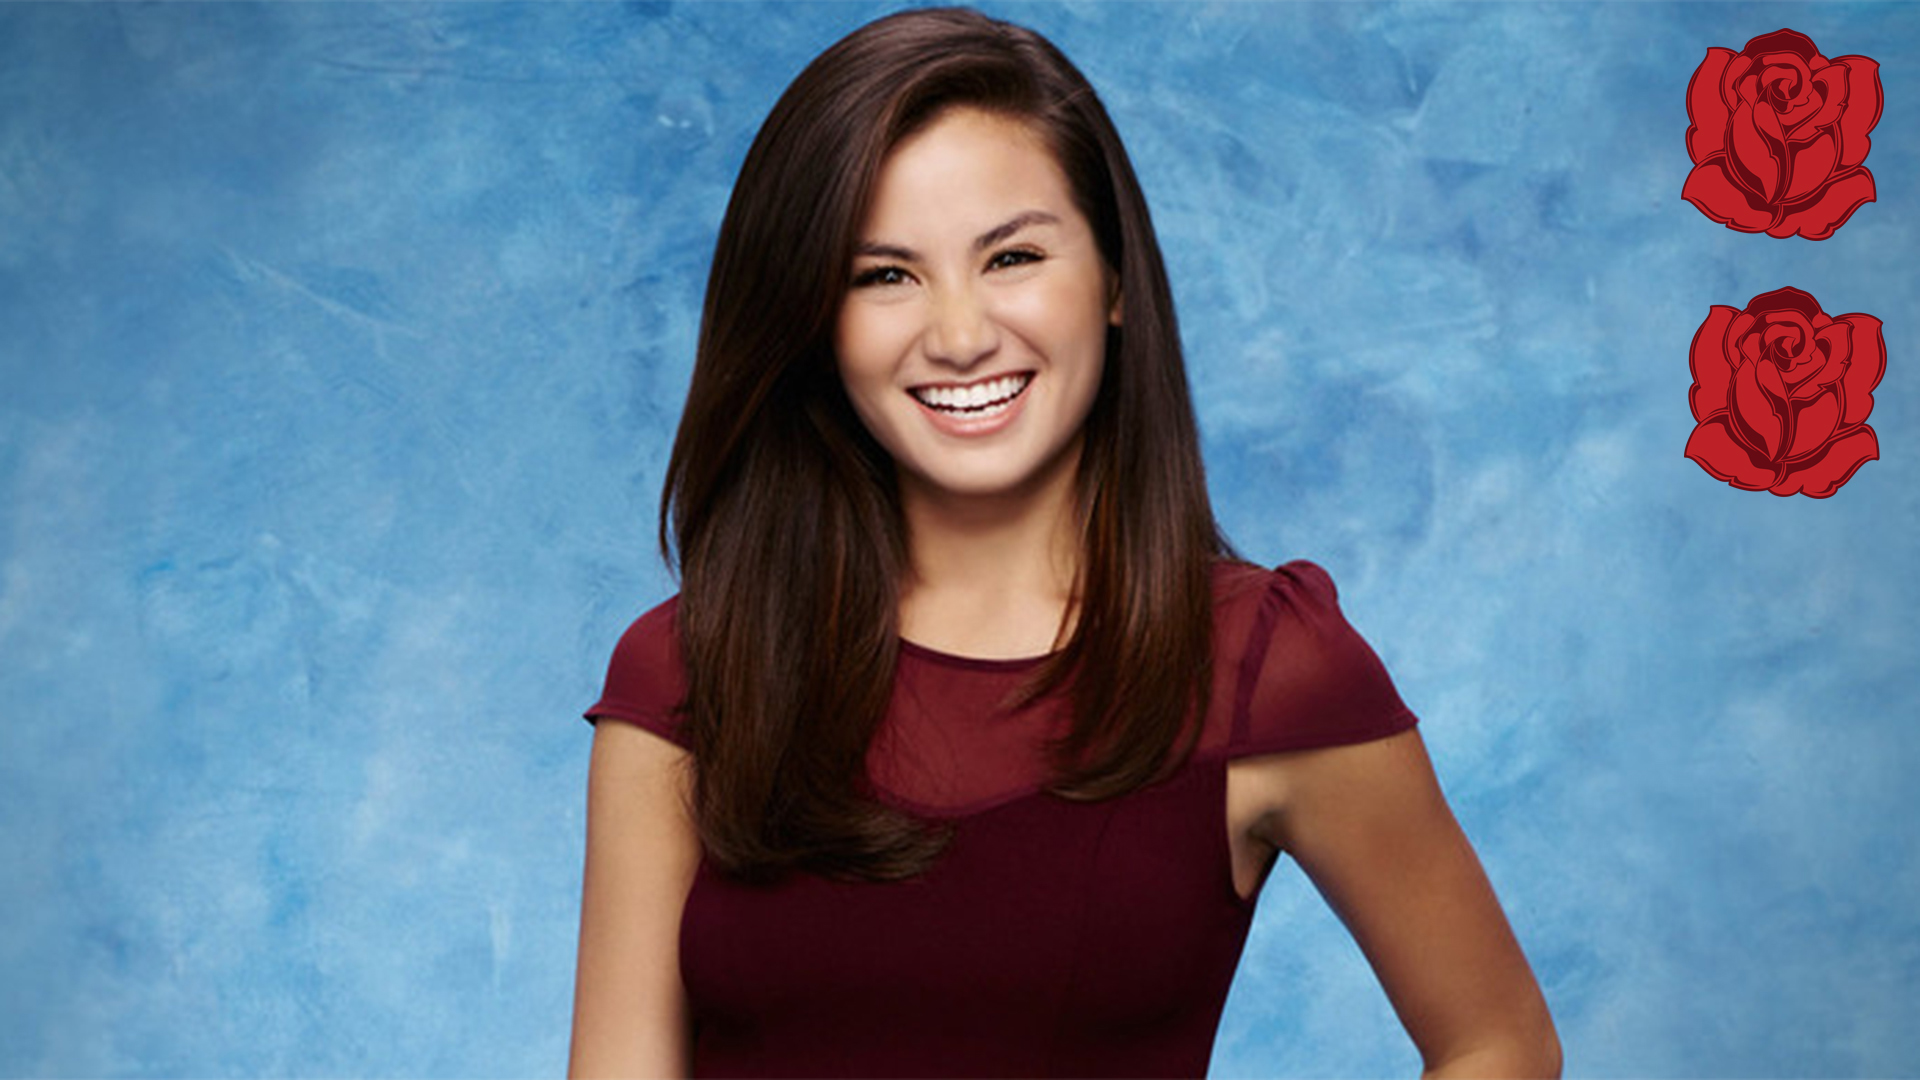 The Bachelor Final 4 What You Need To Know About The Women Vying For Ben